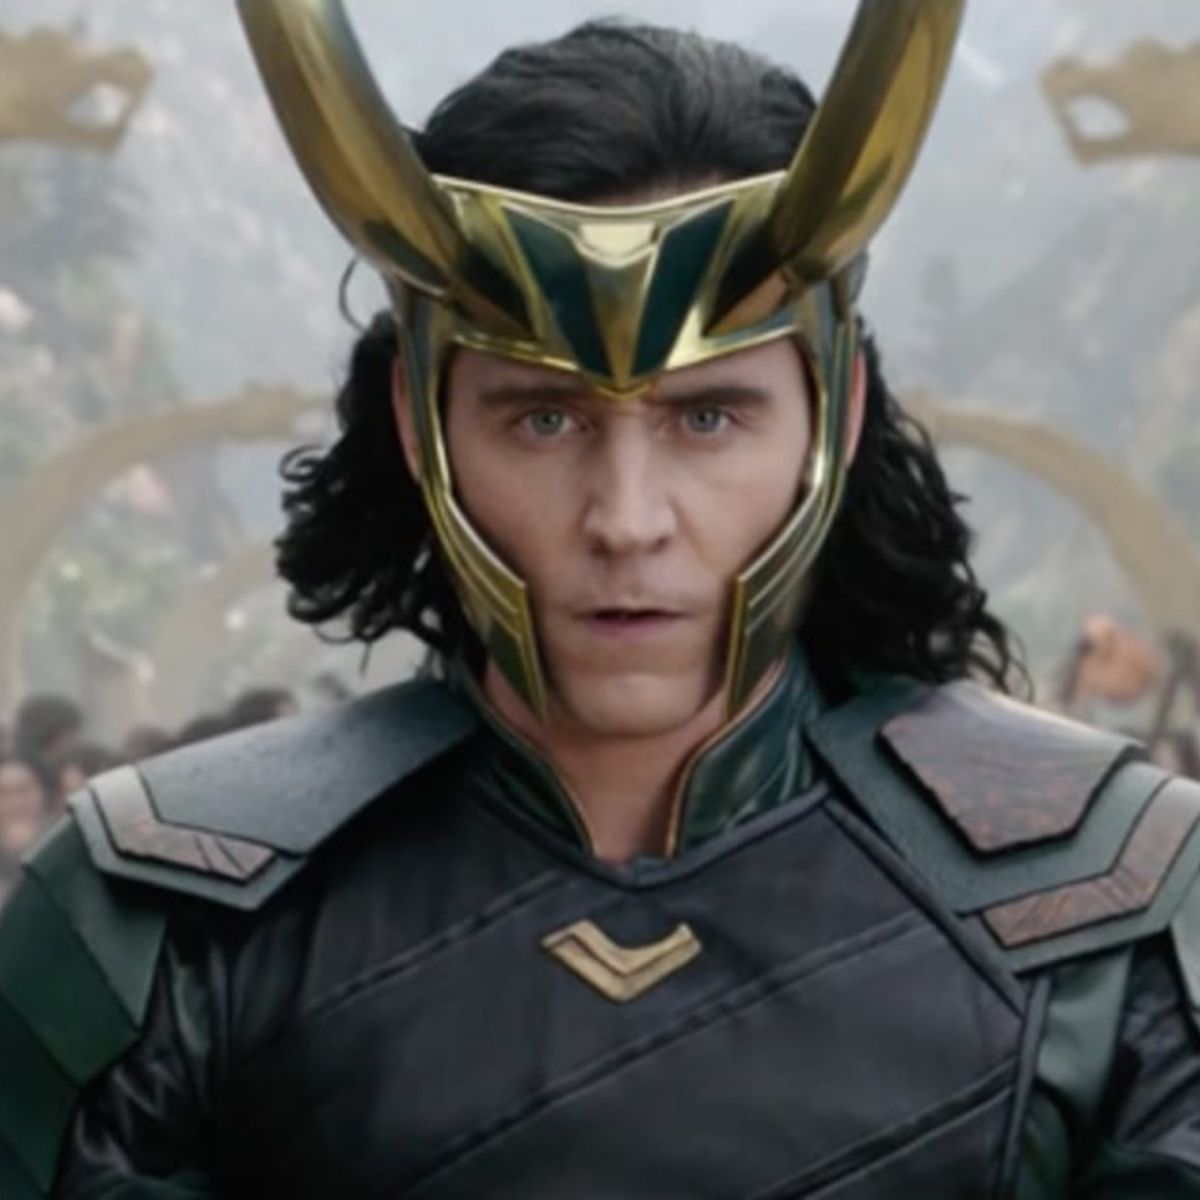 Loki May Be Getting His Own TV Show Sooner Than You Think